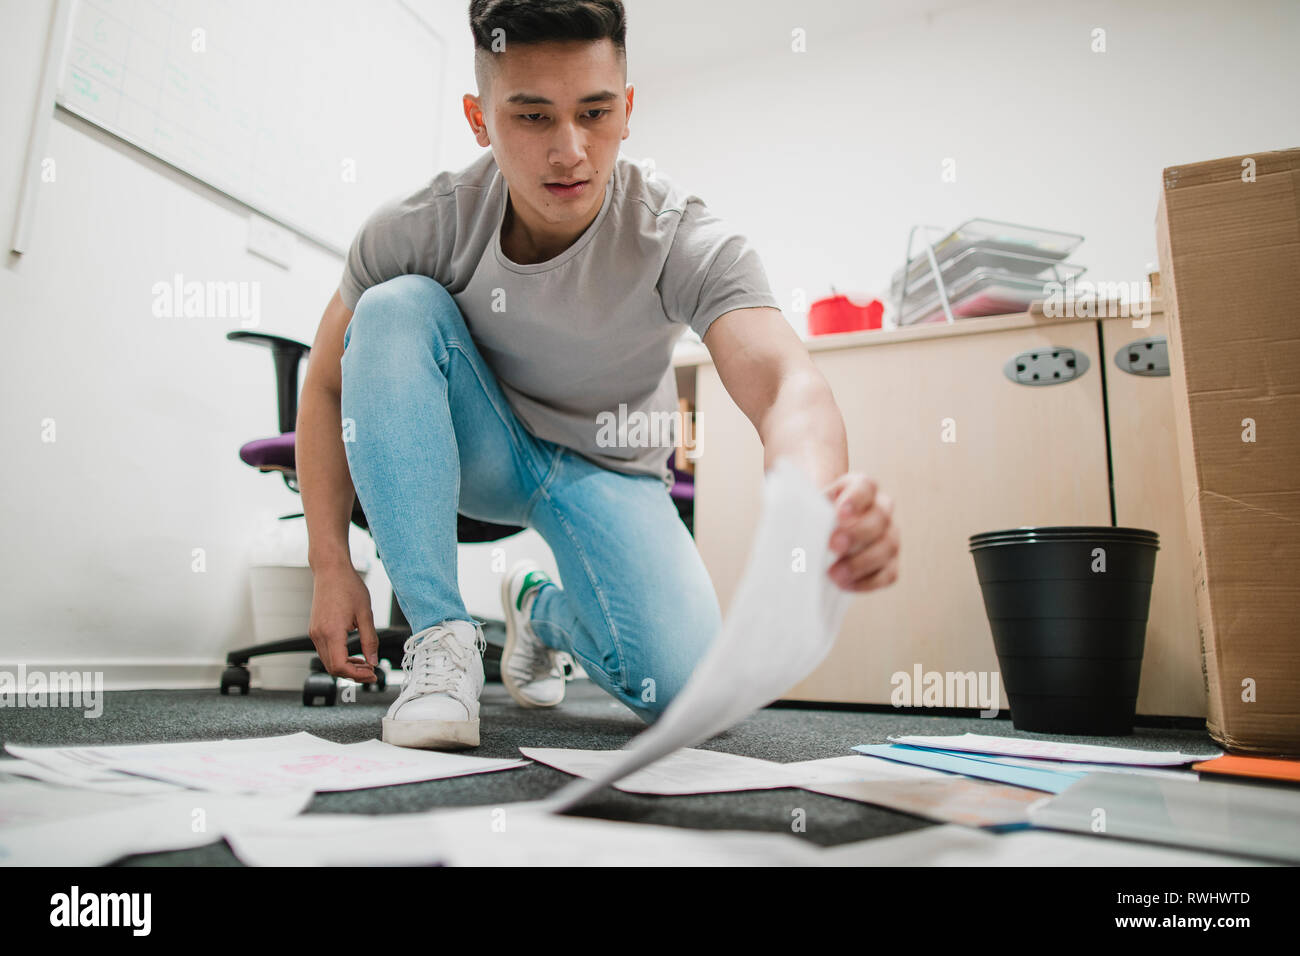 Young trainee is laying out paperwork on the floor in an office. - Stock Image